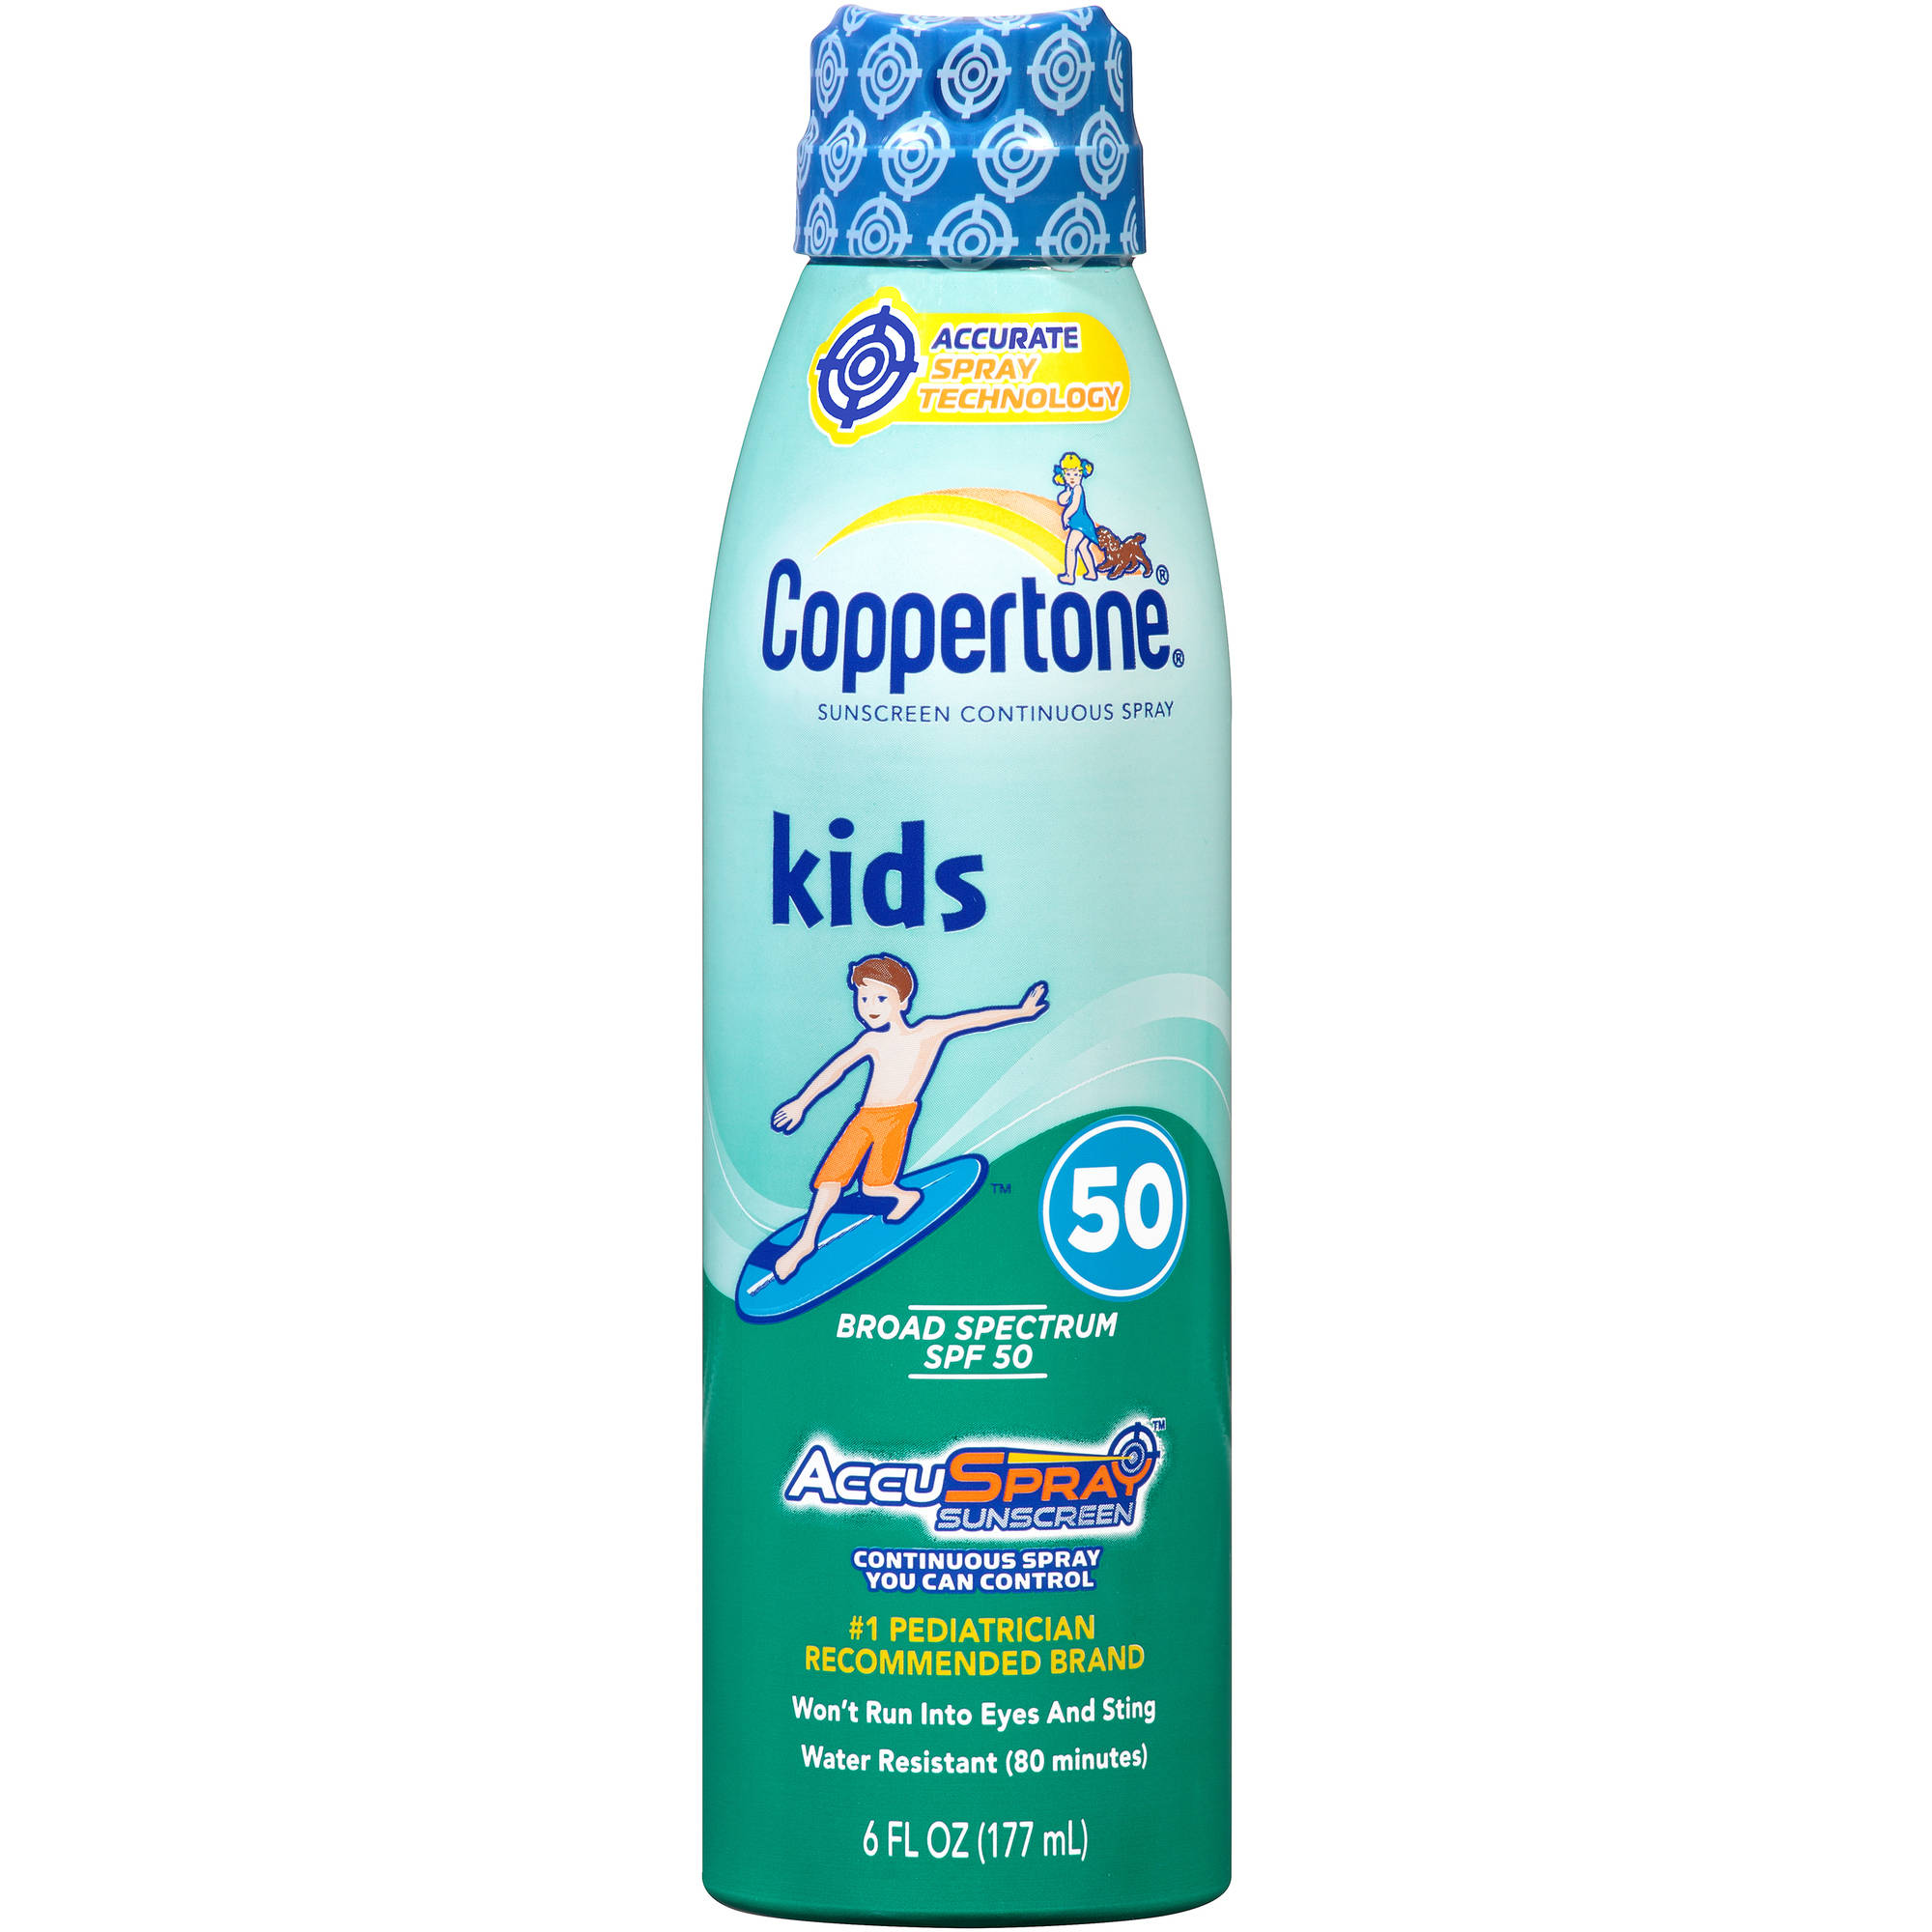 Coppertone Kids Continuous Spray Sunscreen, SPF 50, 6 fl oz